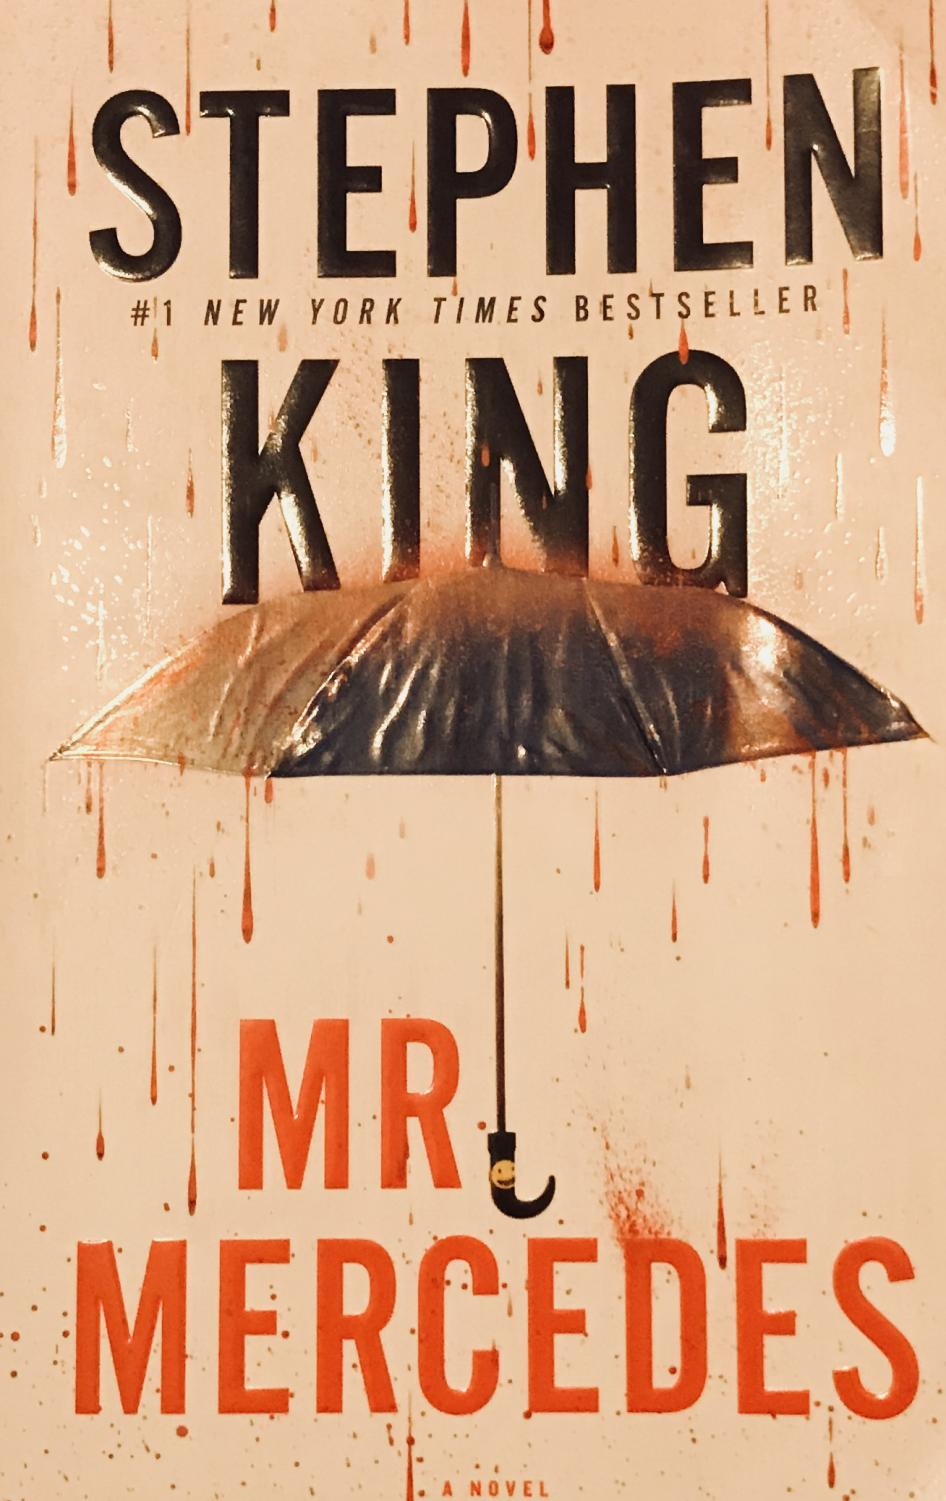 The cover of Stephen King's Mr. Mercedes. Photo Credit: Fiona McAleer